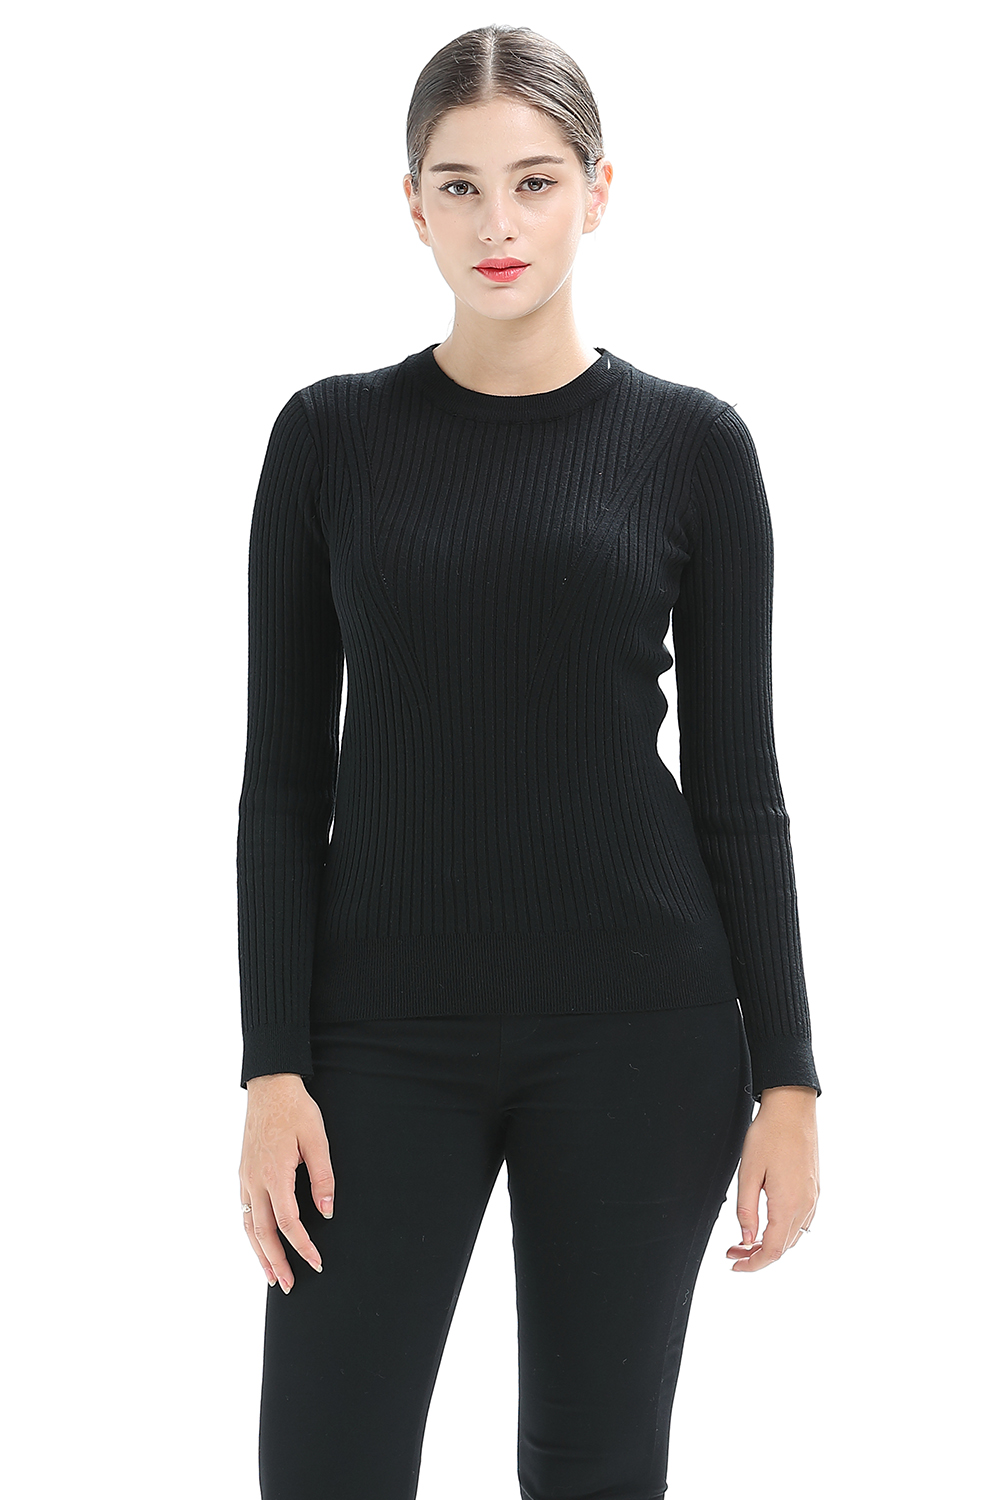 High Quality Cashmere Sweater Women Winter Pullover Solid Knitted Sweater Top For -6780